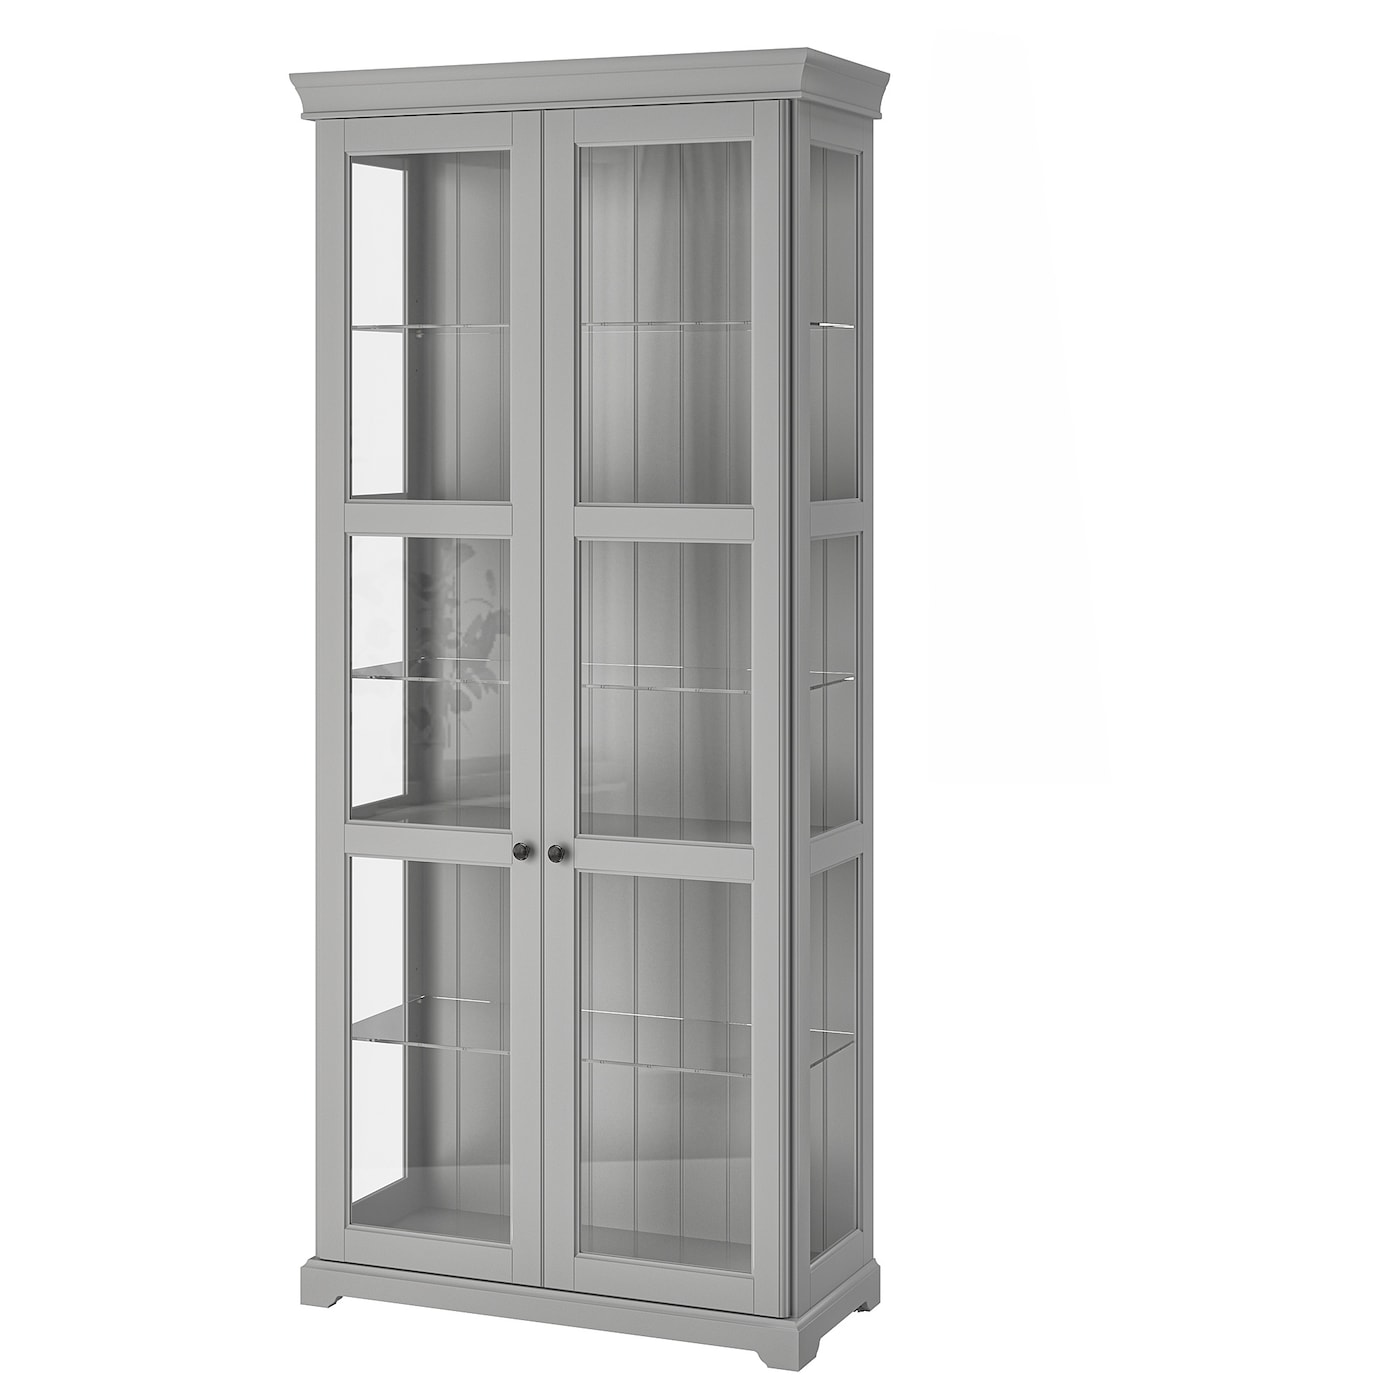 Ikea liatorp glass door cabinet 2 fixed shelves for high stability